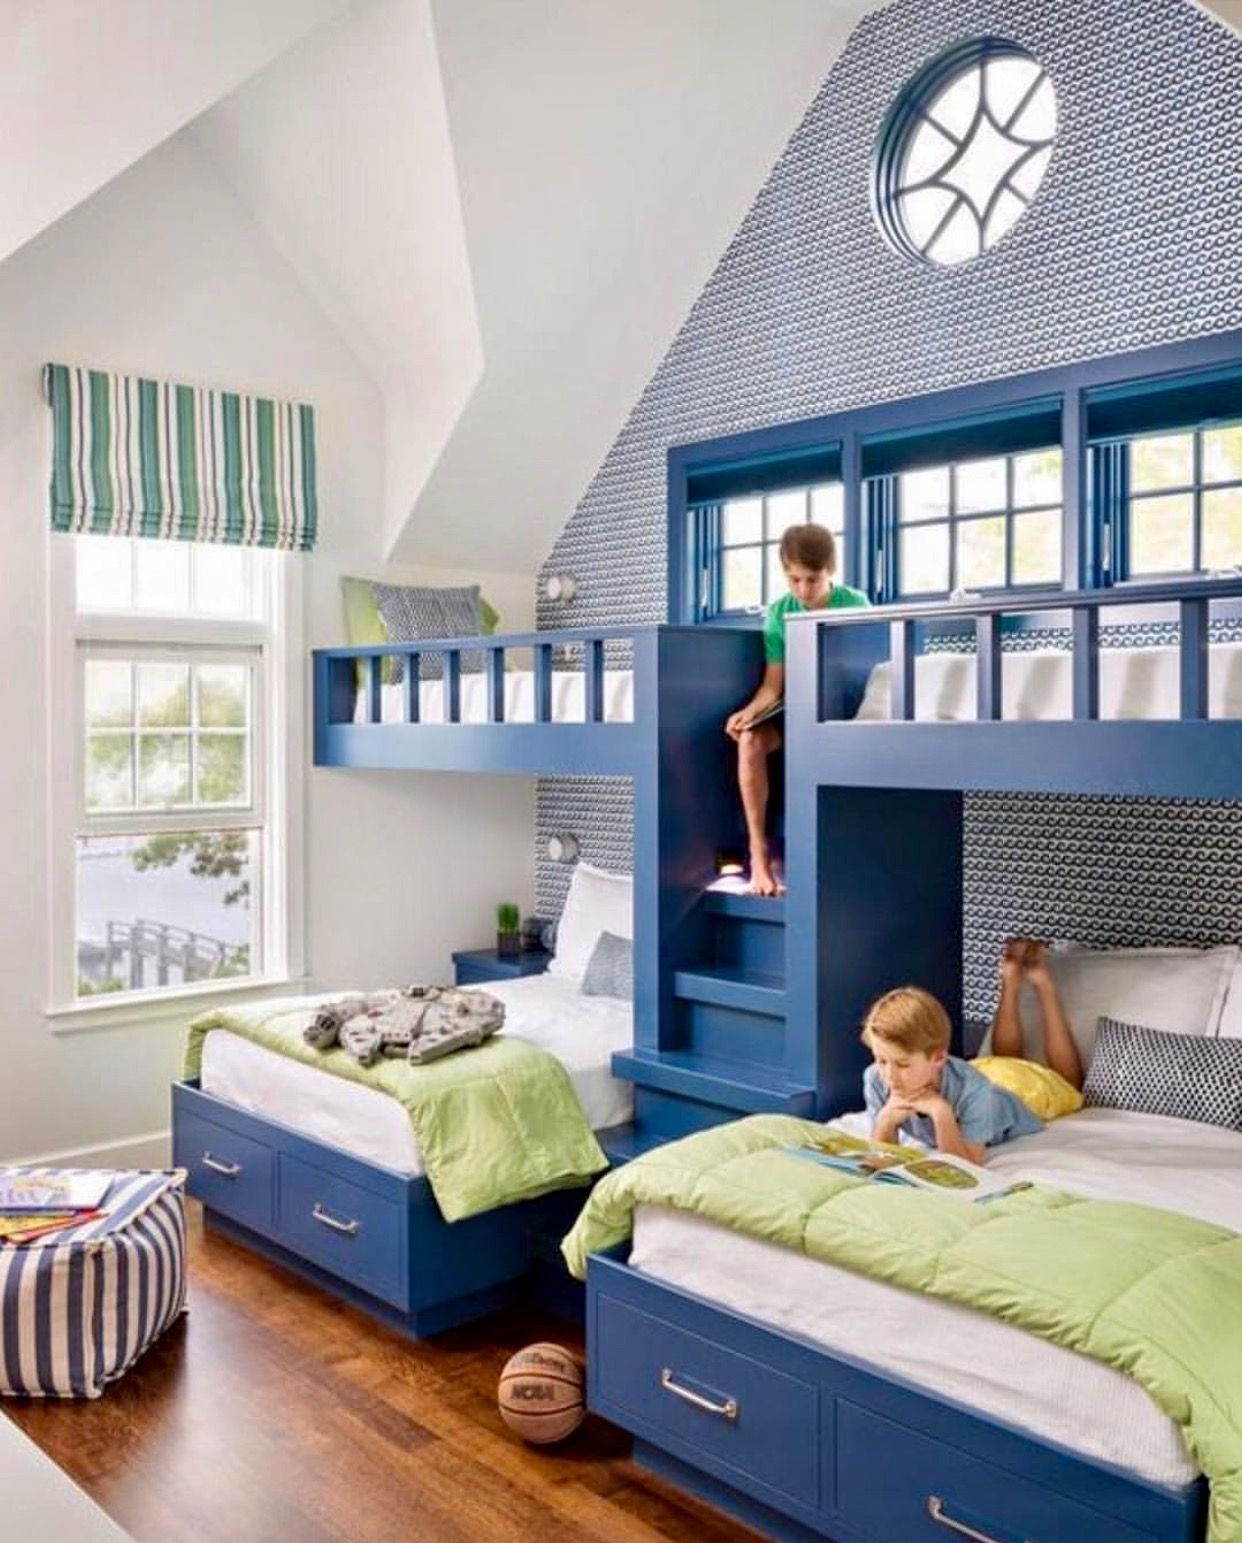 Pin By Lisa Mitchell On Decorating Home Decor In 2018 Bunk Rooms